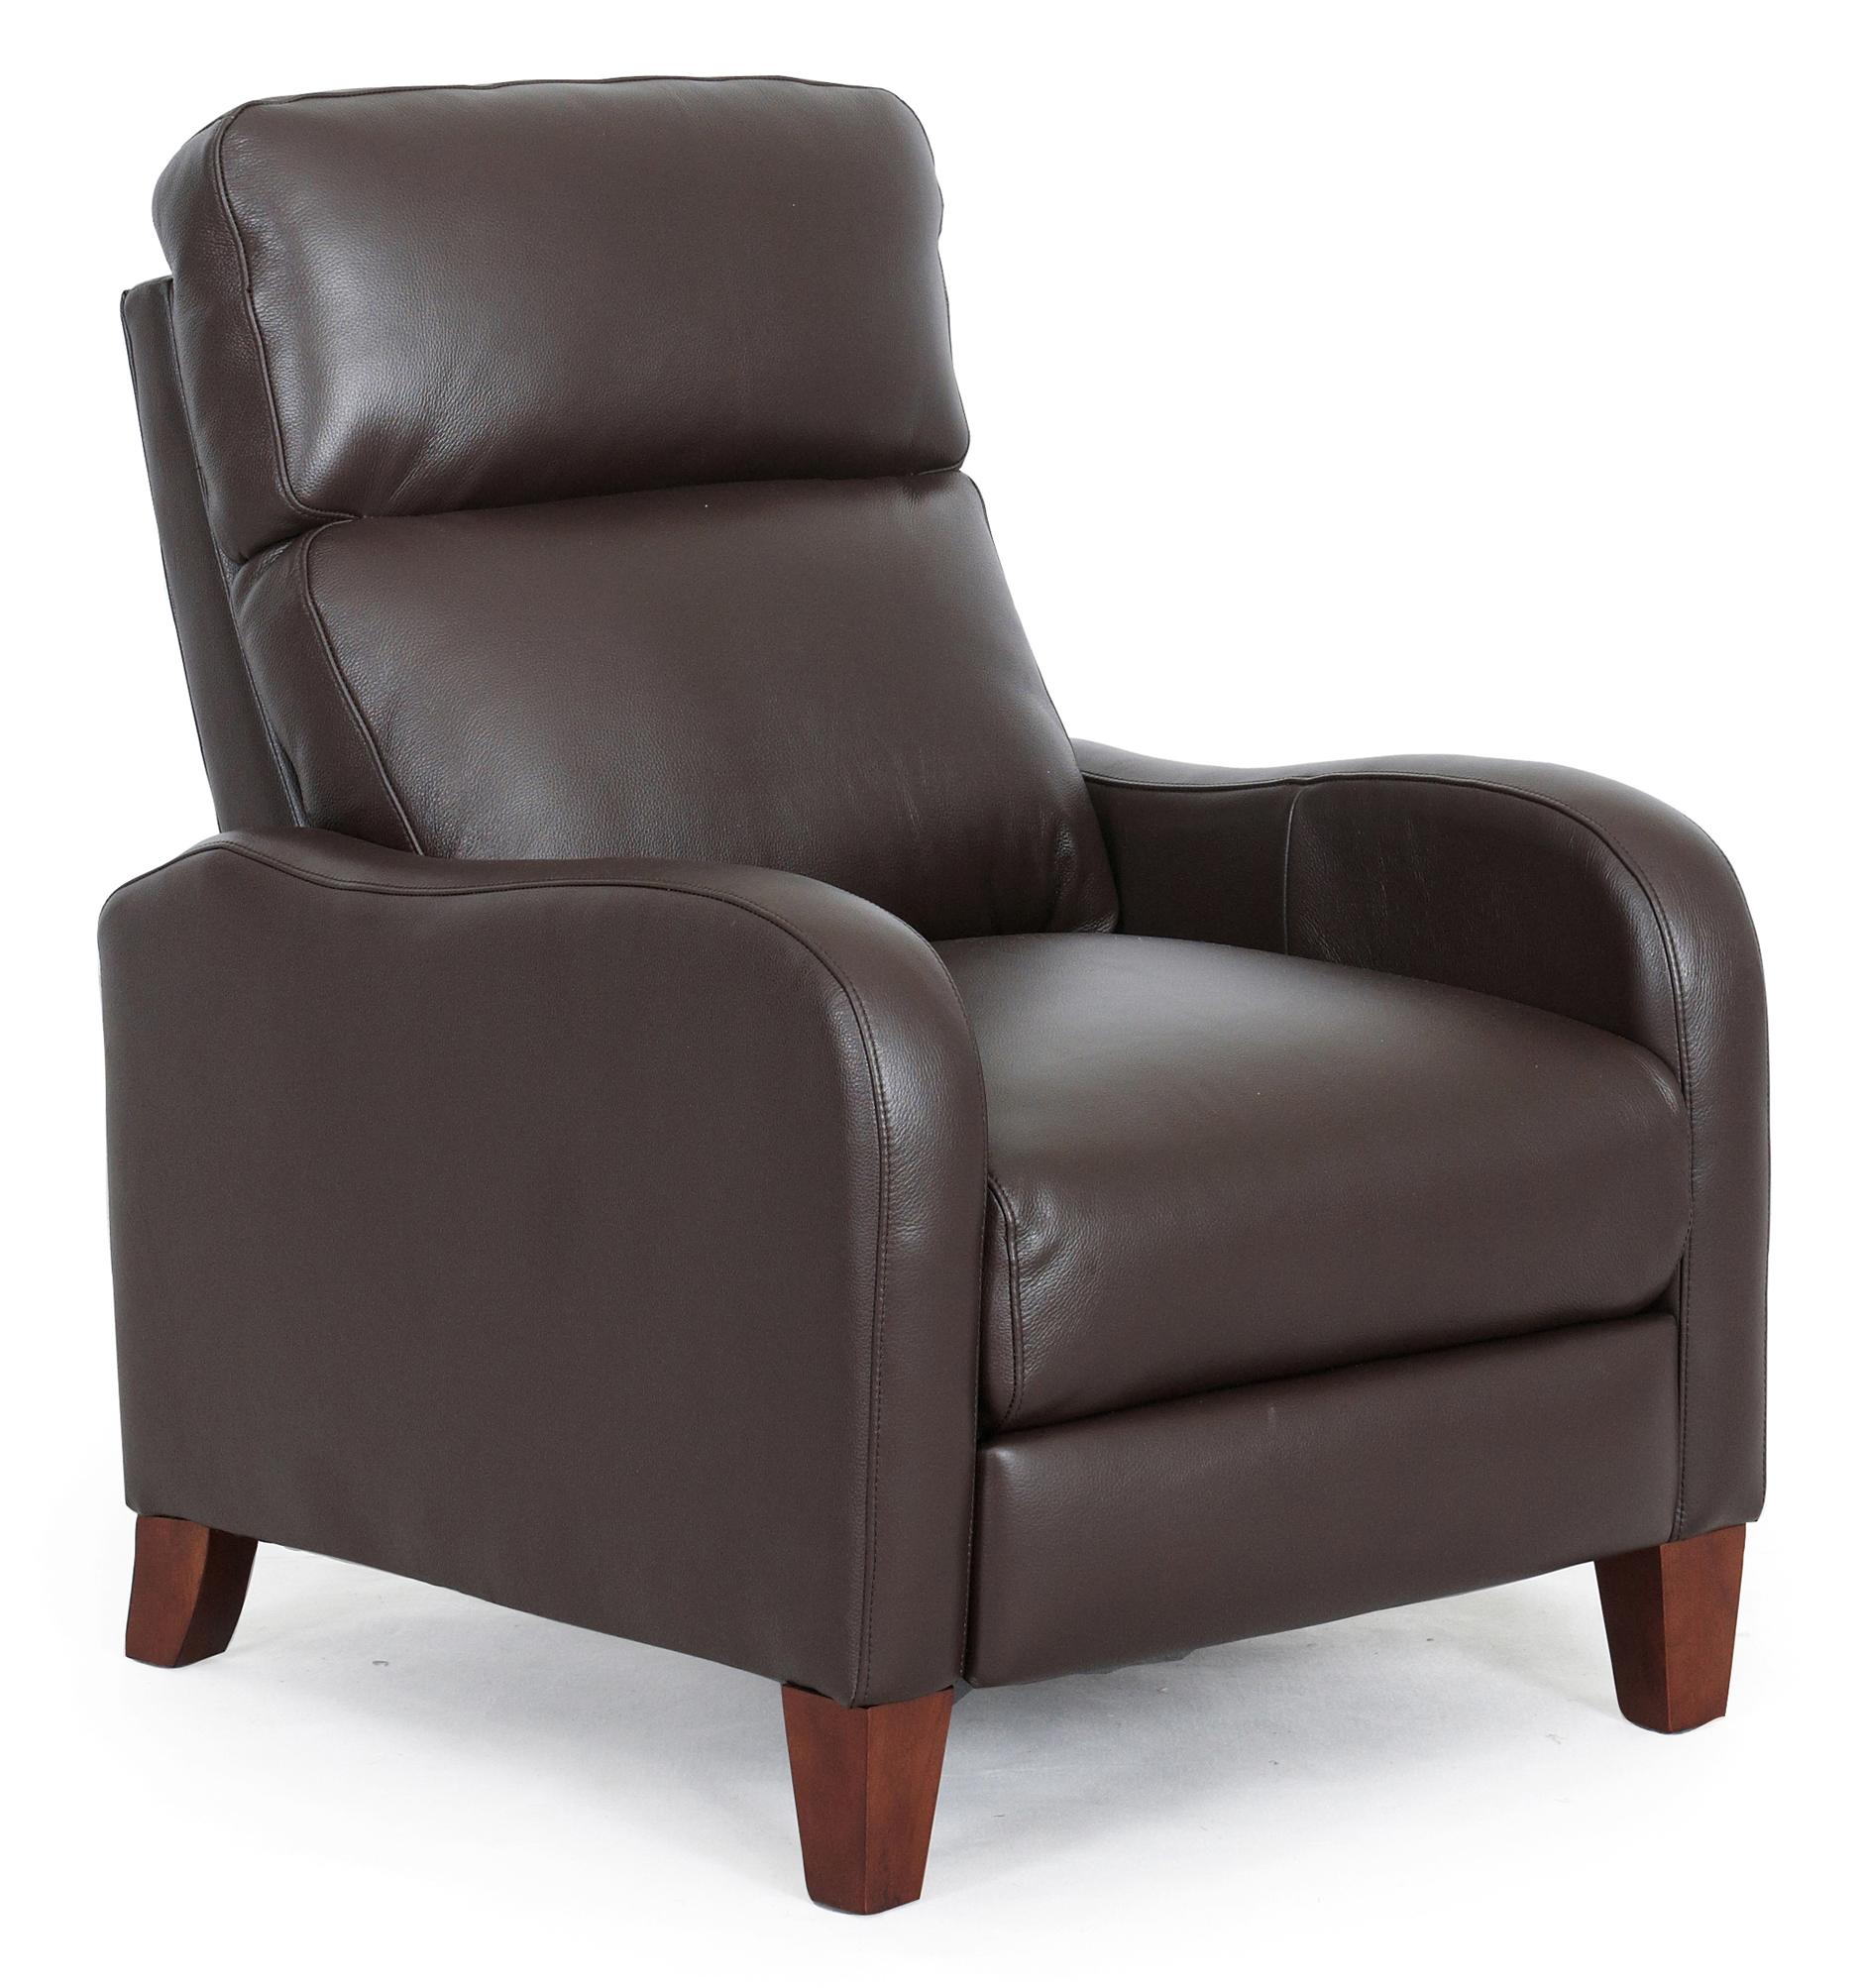 1005 Push Thru Arm Recliner by Synergy Home Furnishings at Johnny Janosik